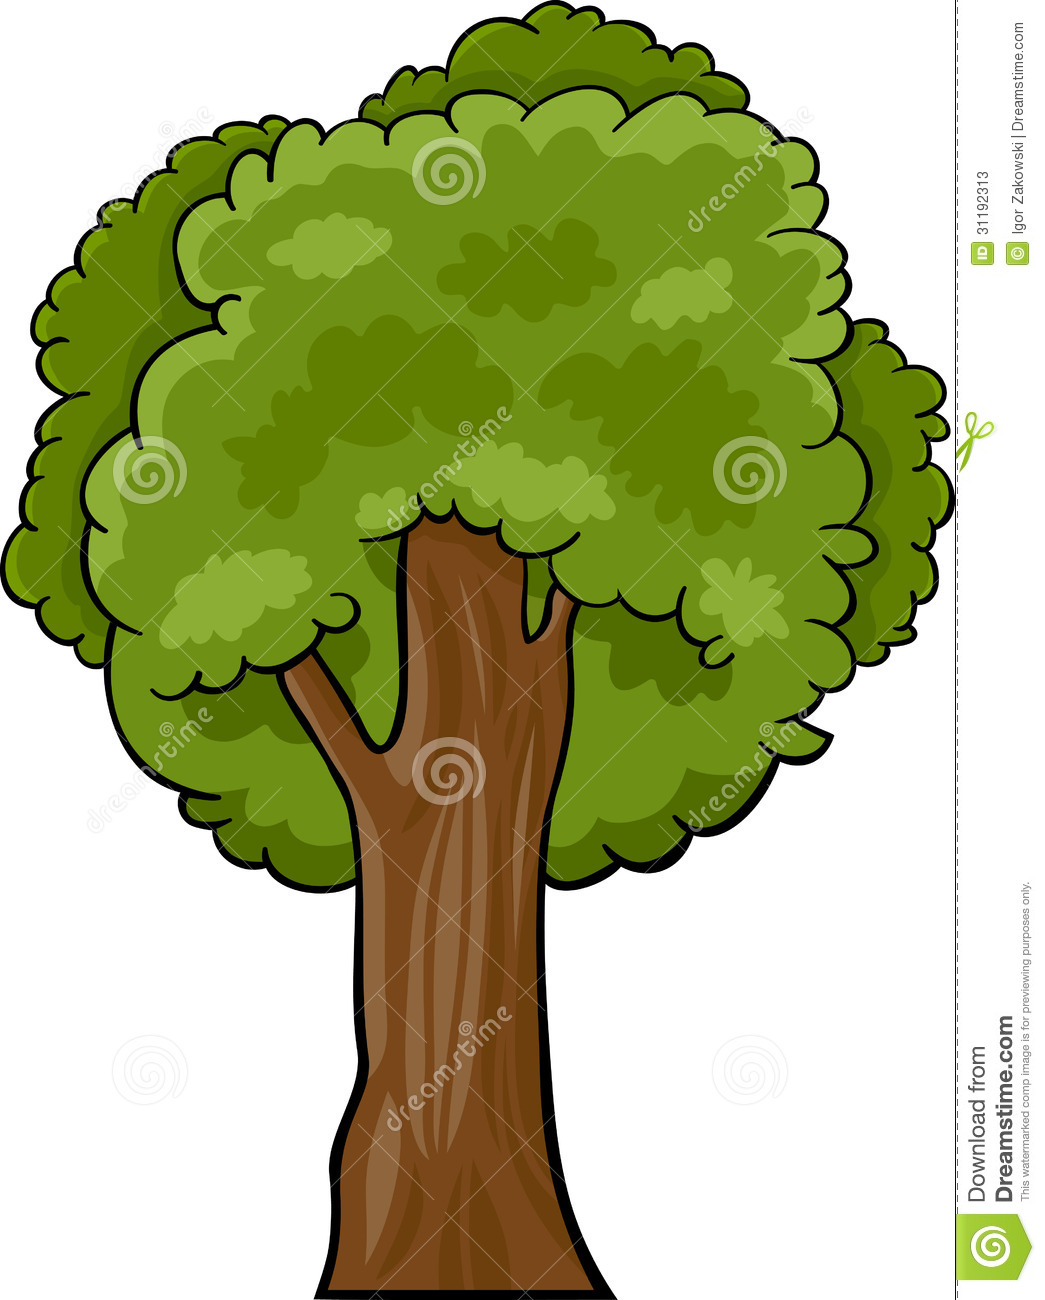 Cartoon maple tree